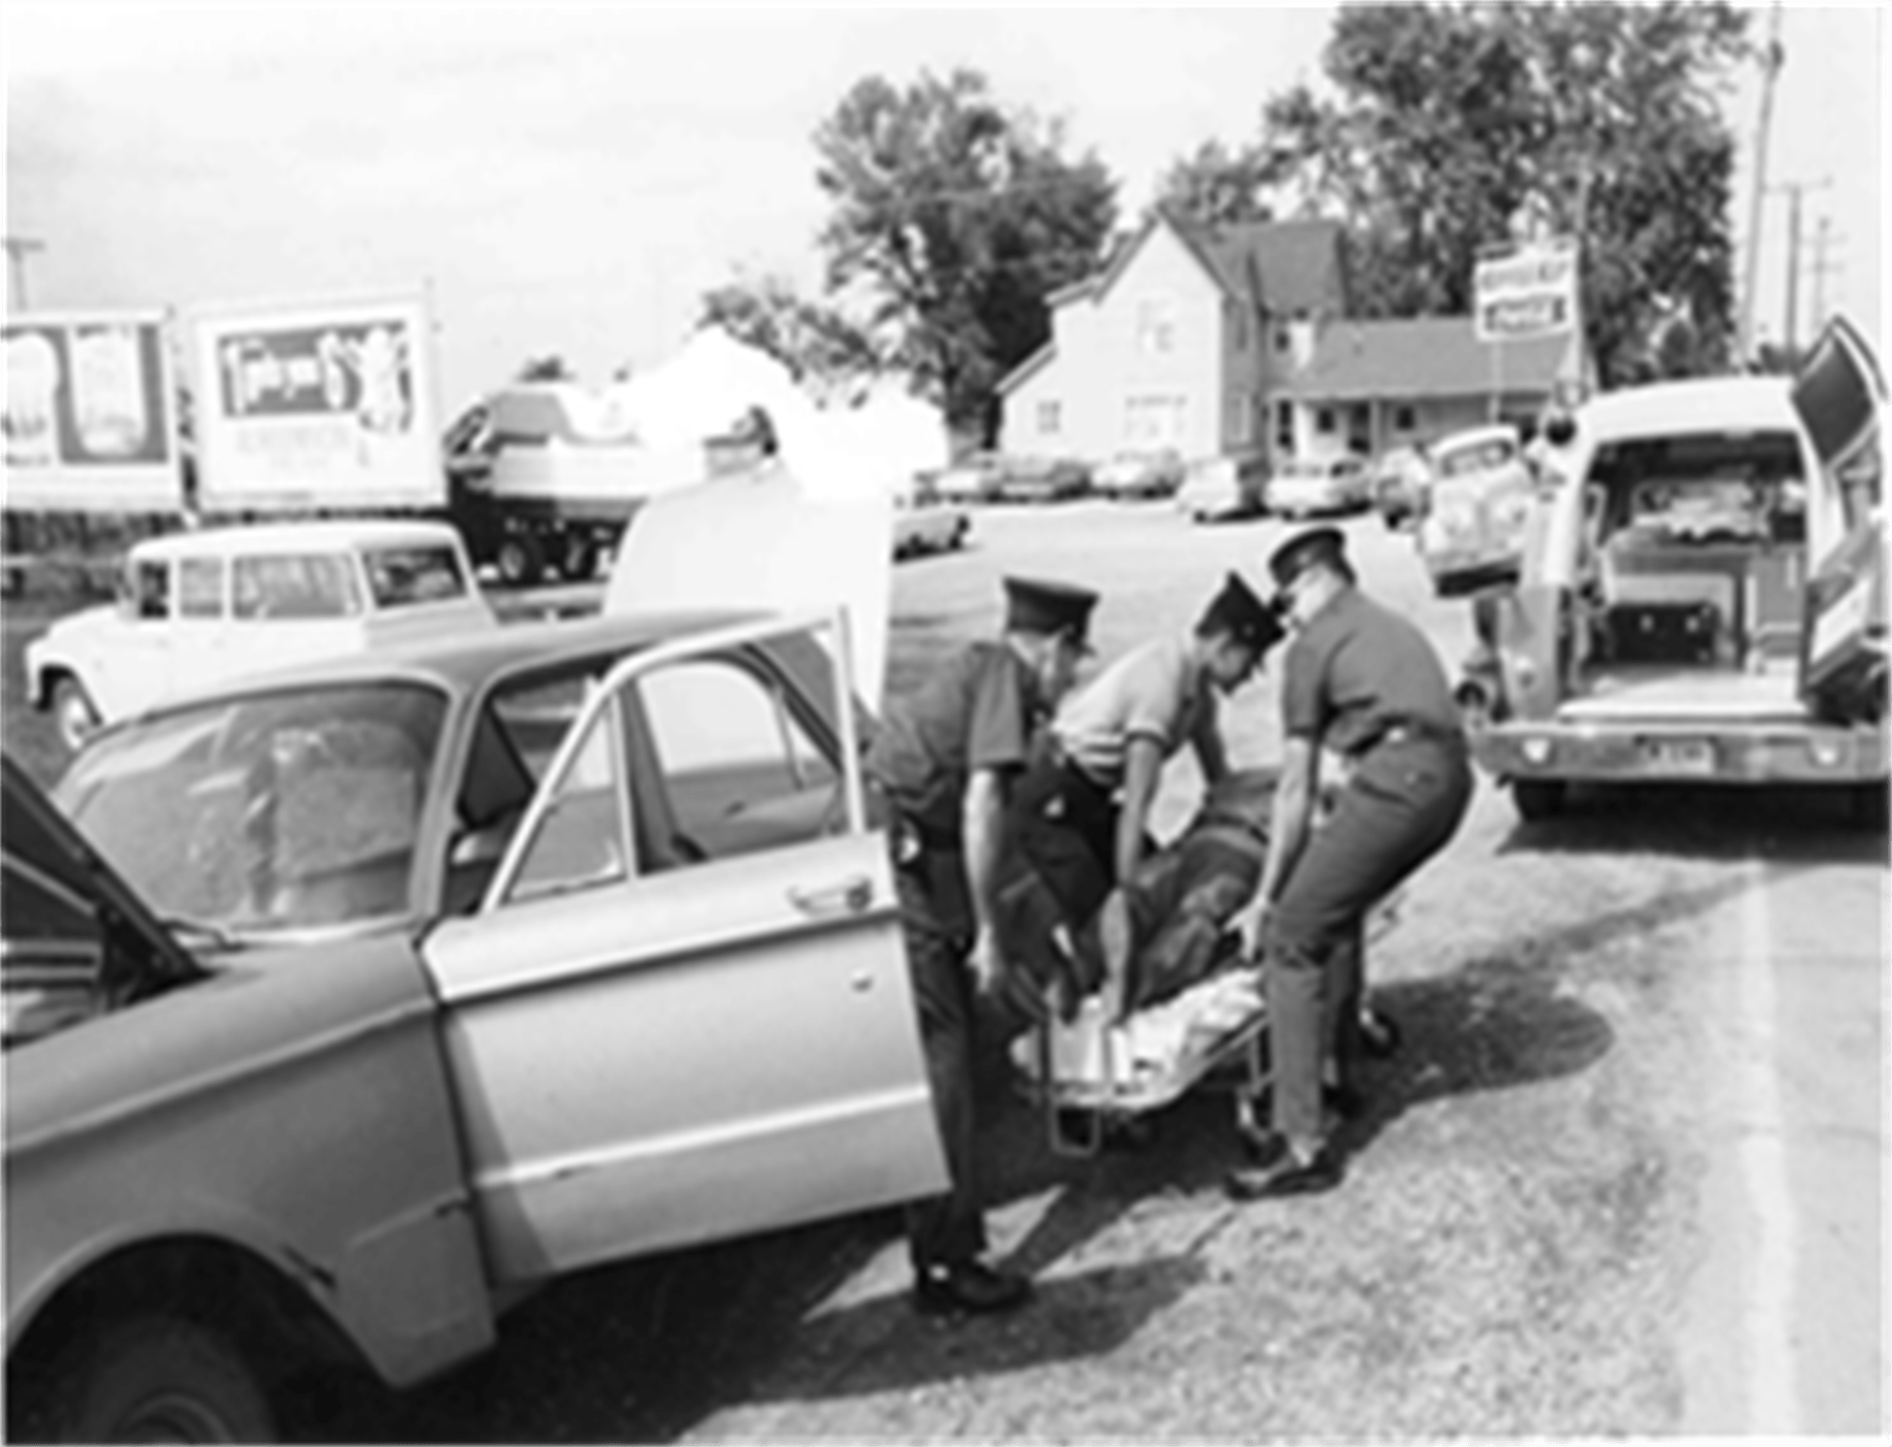 Ambulance call in the 60s